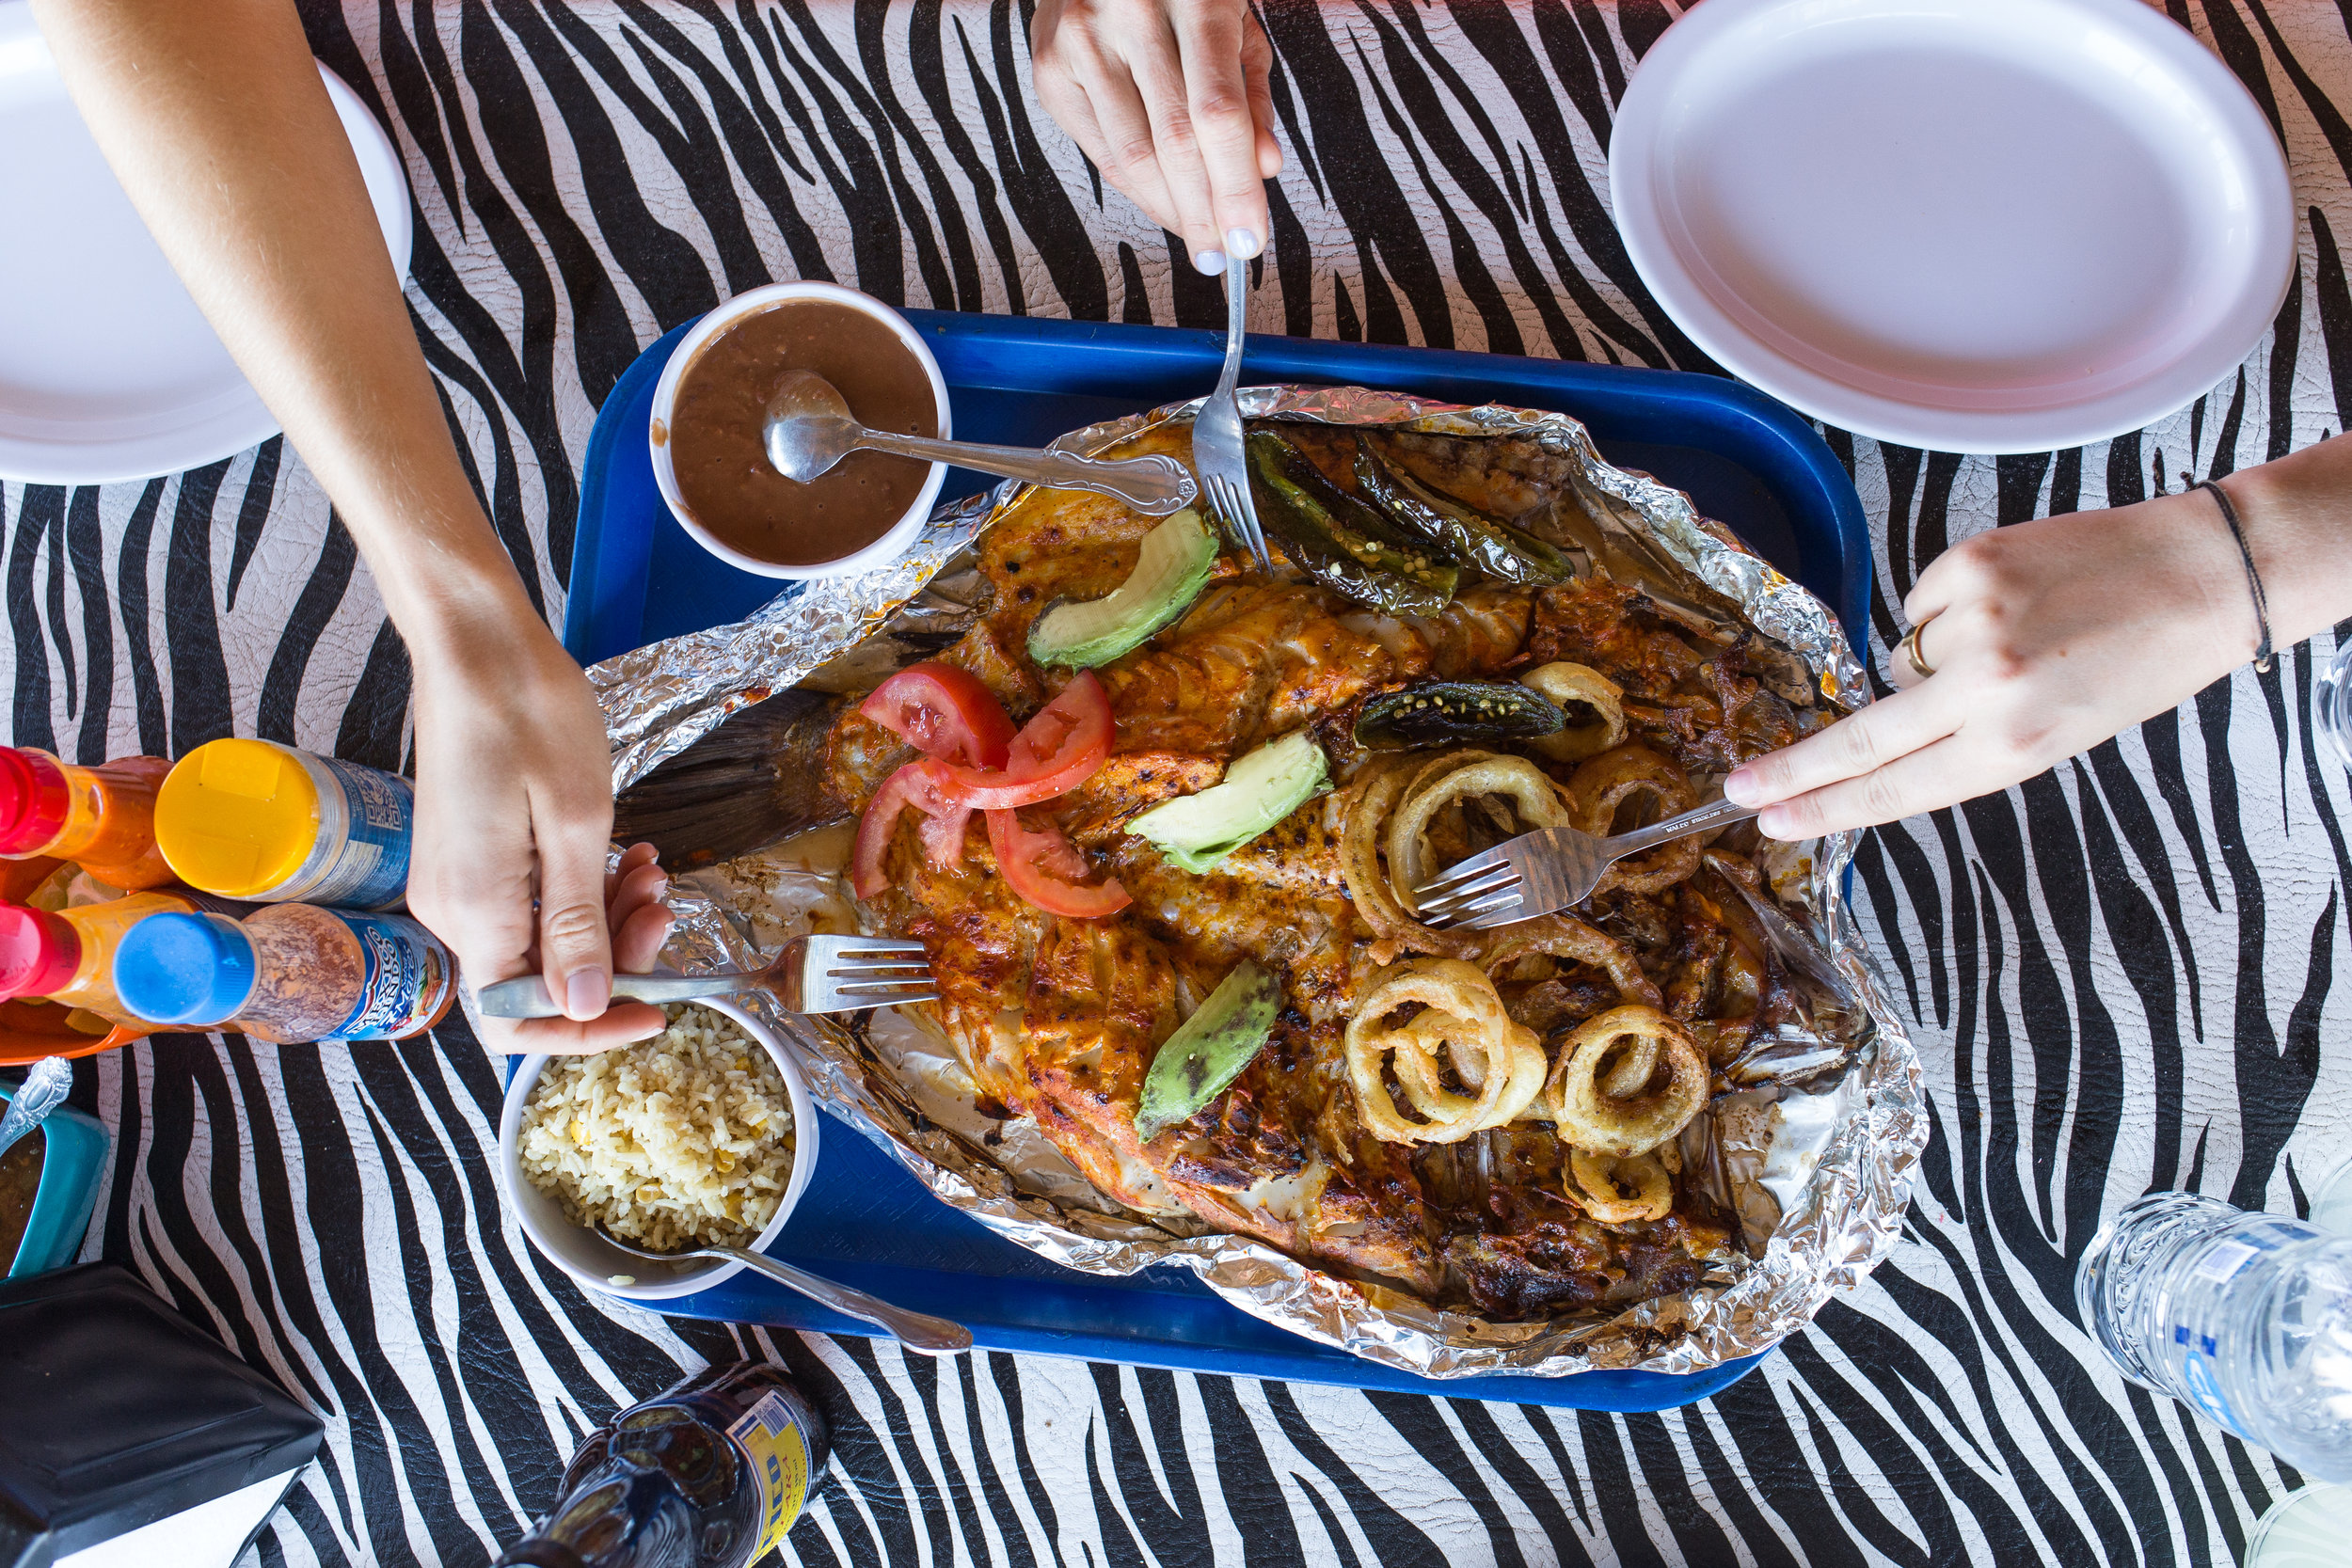 Baja California Seafood Feast by Joanne Pio